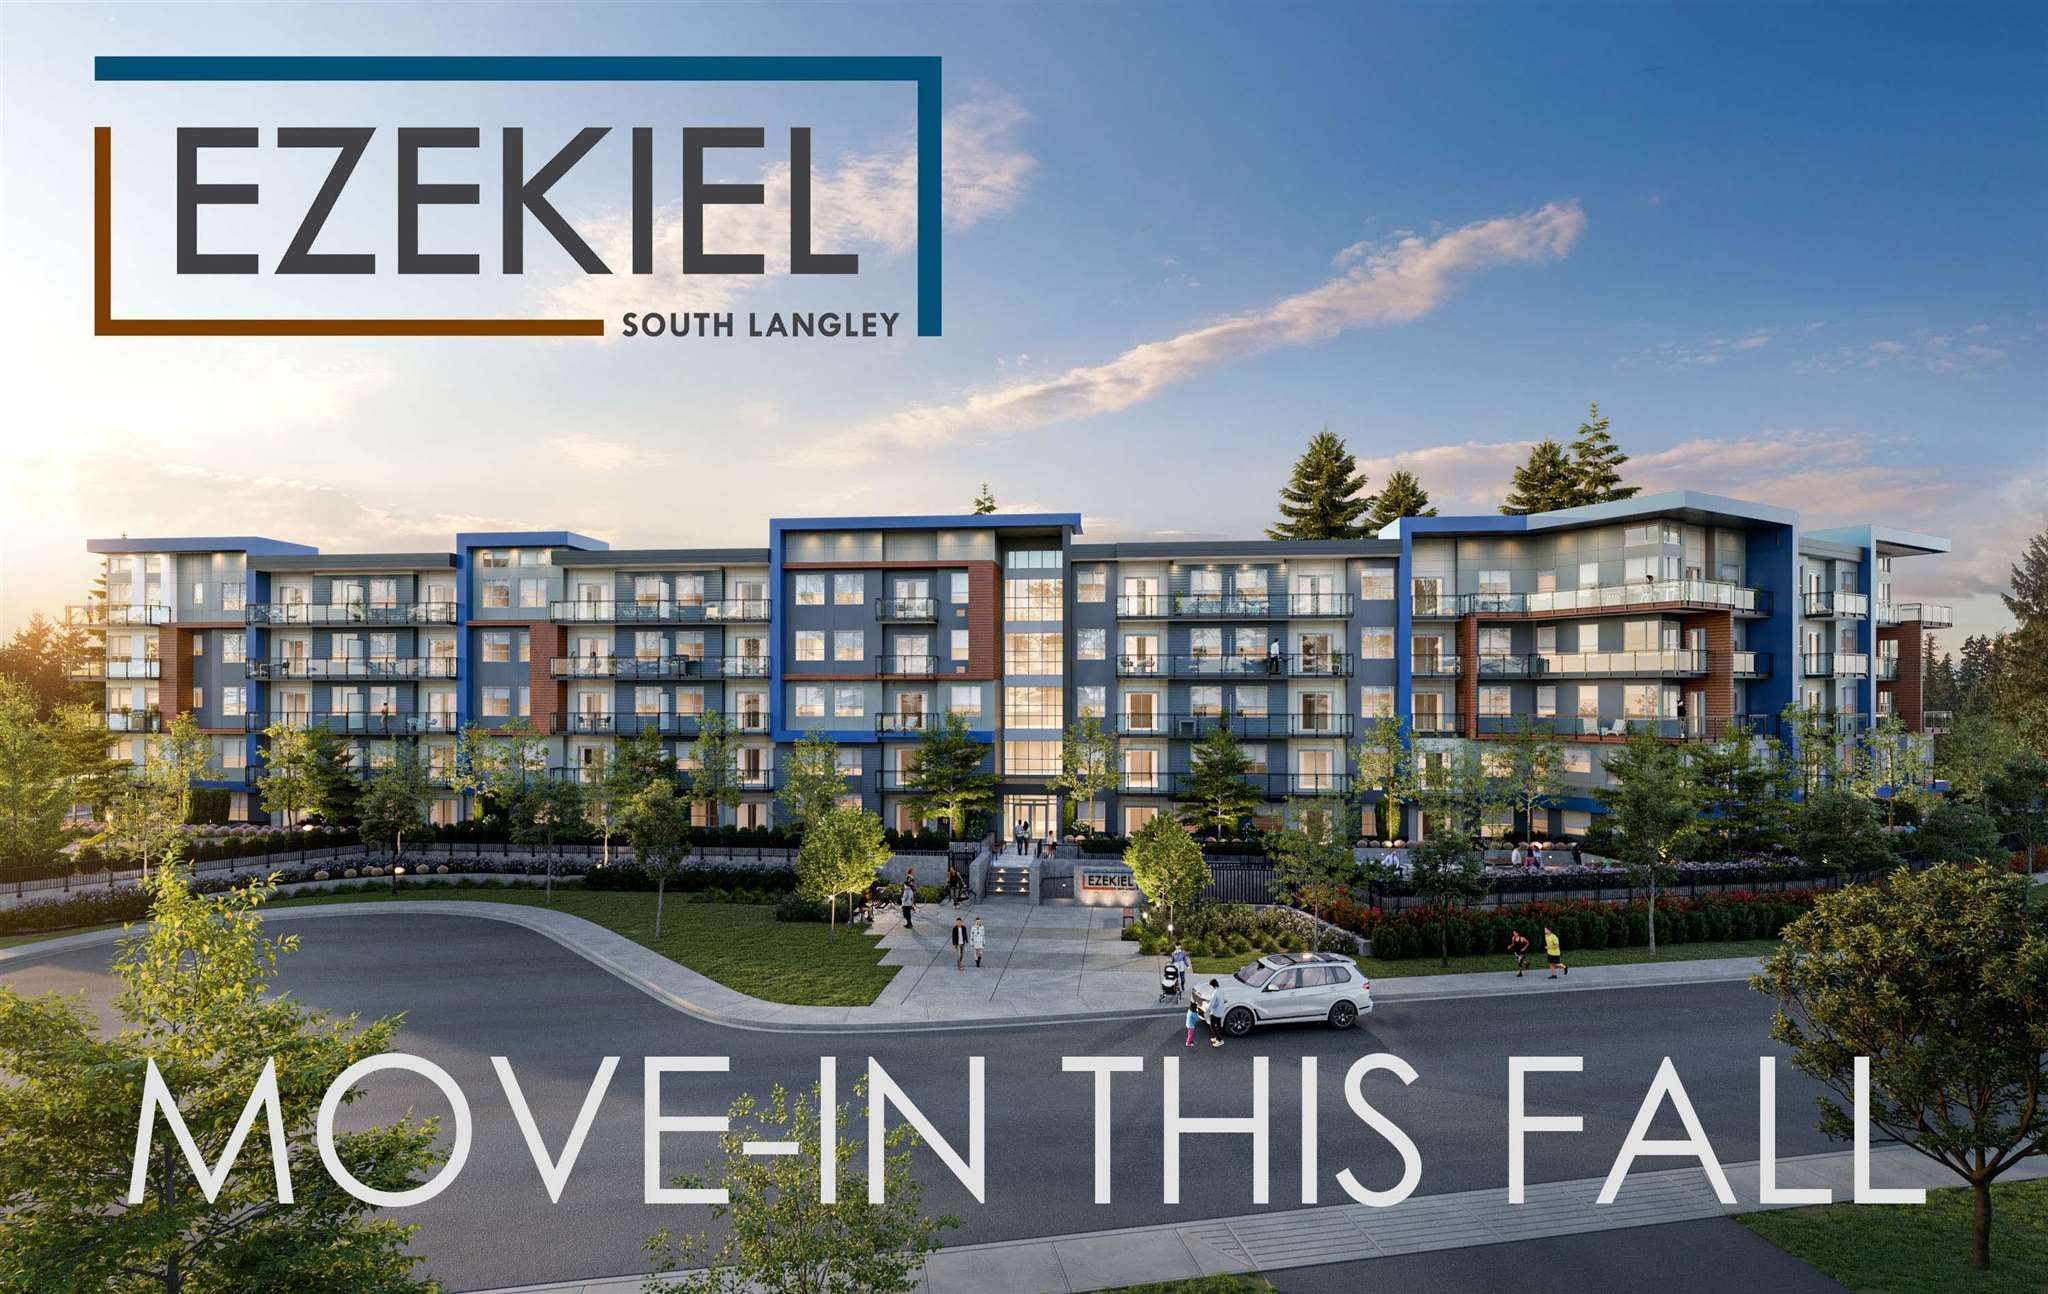 """Main Photo: 502 5486 199A Street in Langley: Langley City Condo for sale in """"Ezekiel"""" : MLS®# R2605750"""